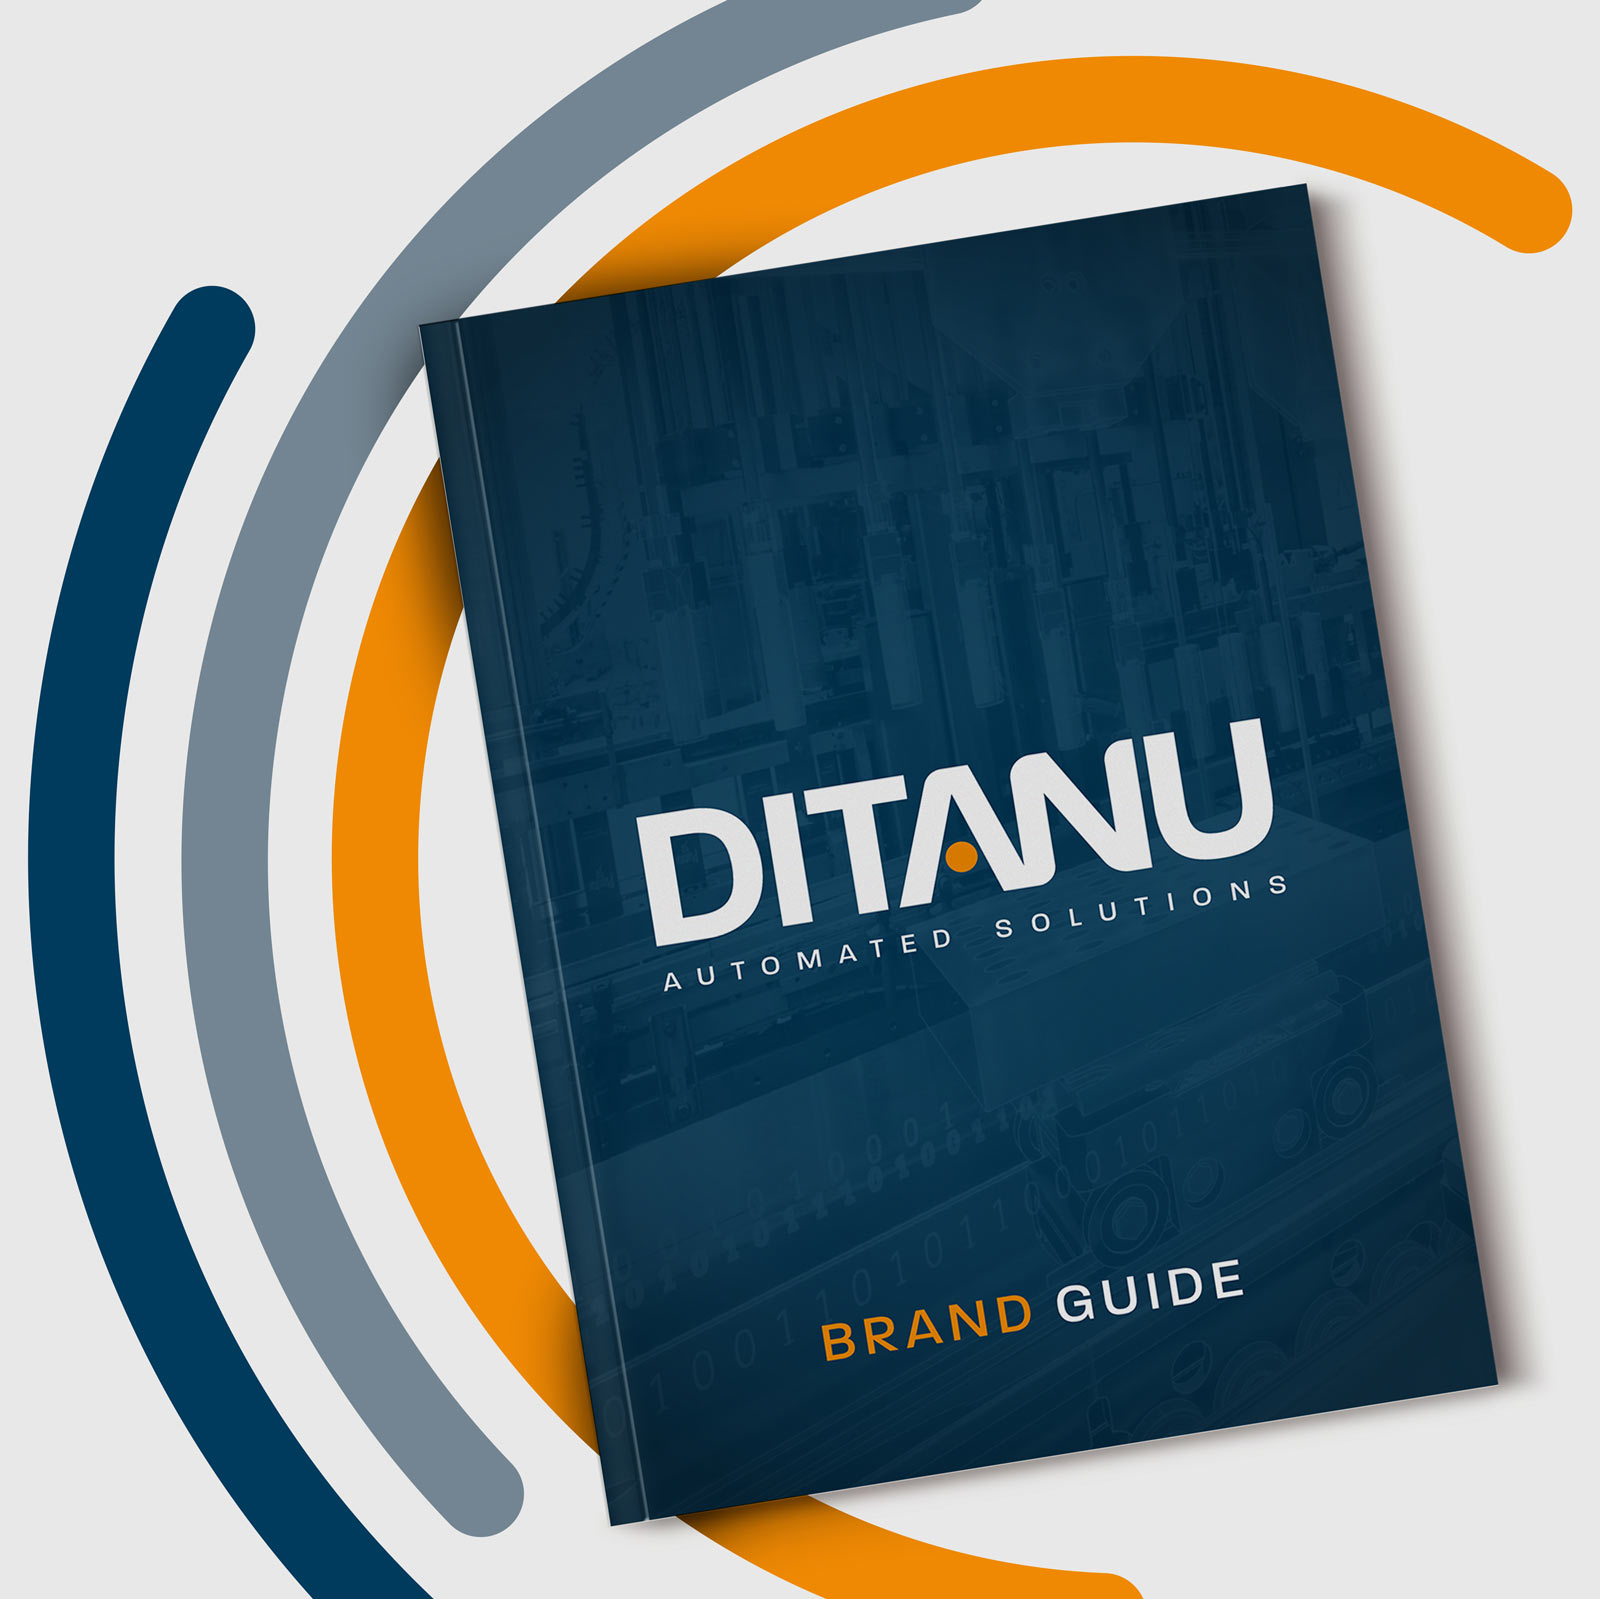 Ditany Automated Solutions Brand Guide